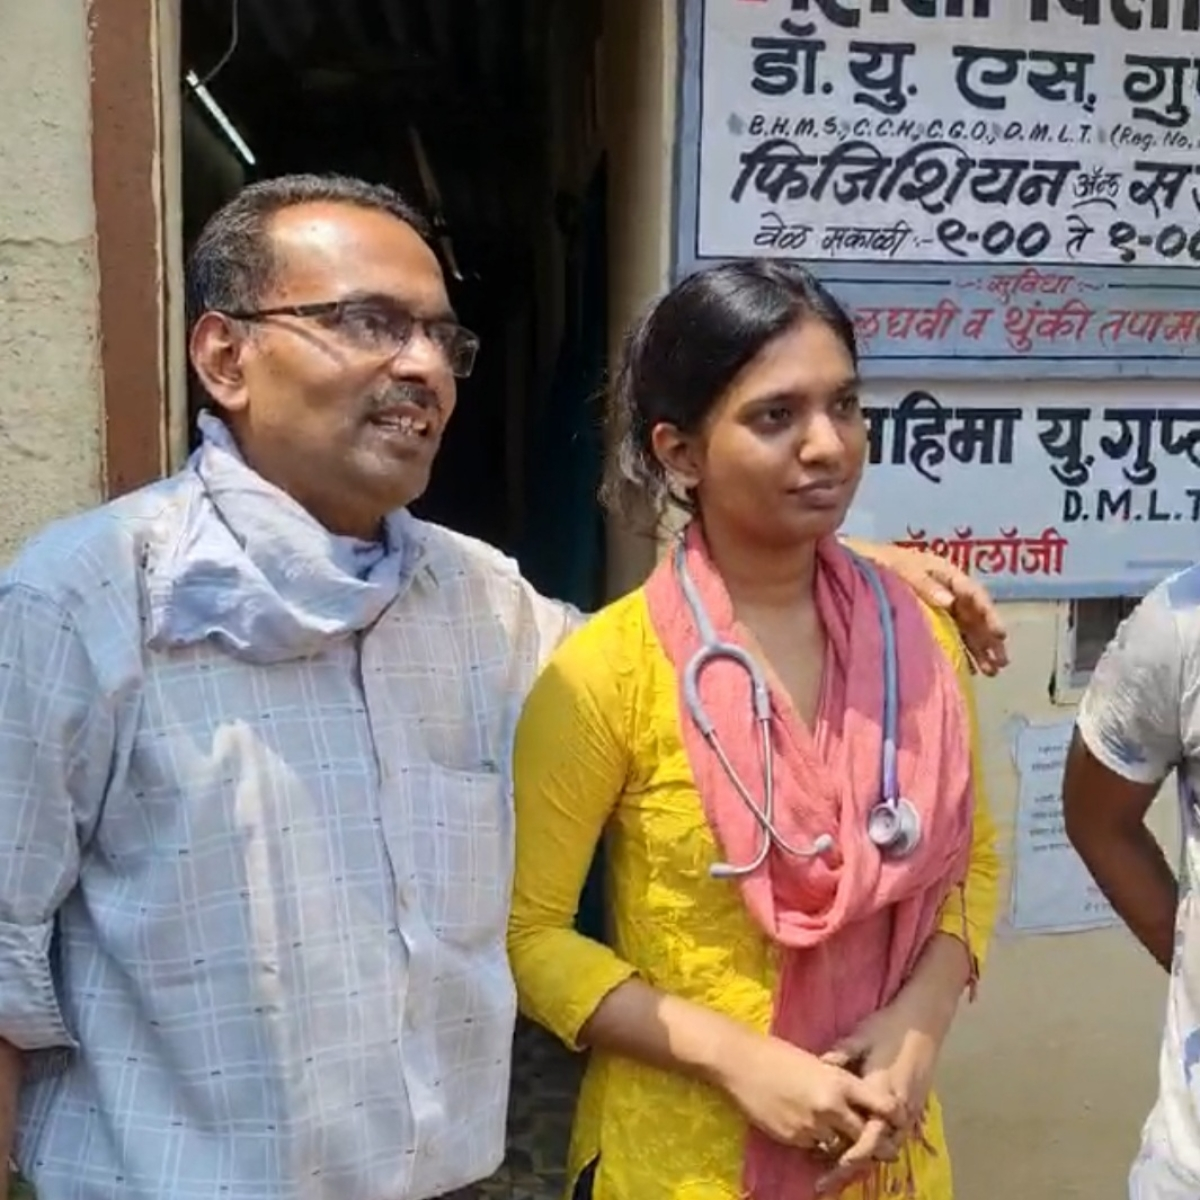 Thane: Doctor booked for treating COVID-19 patients without permission from state, local authorities